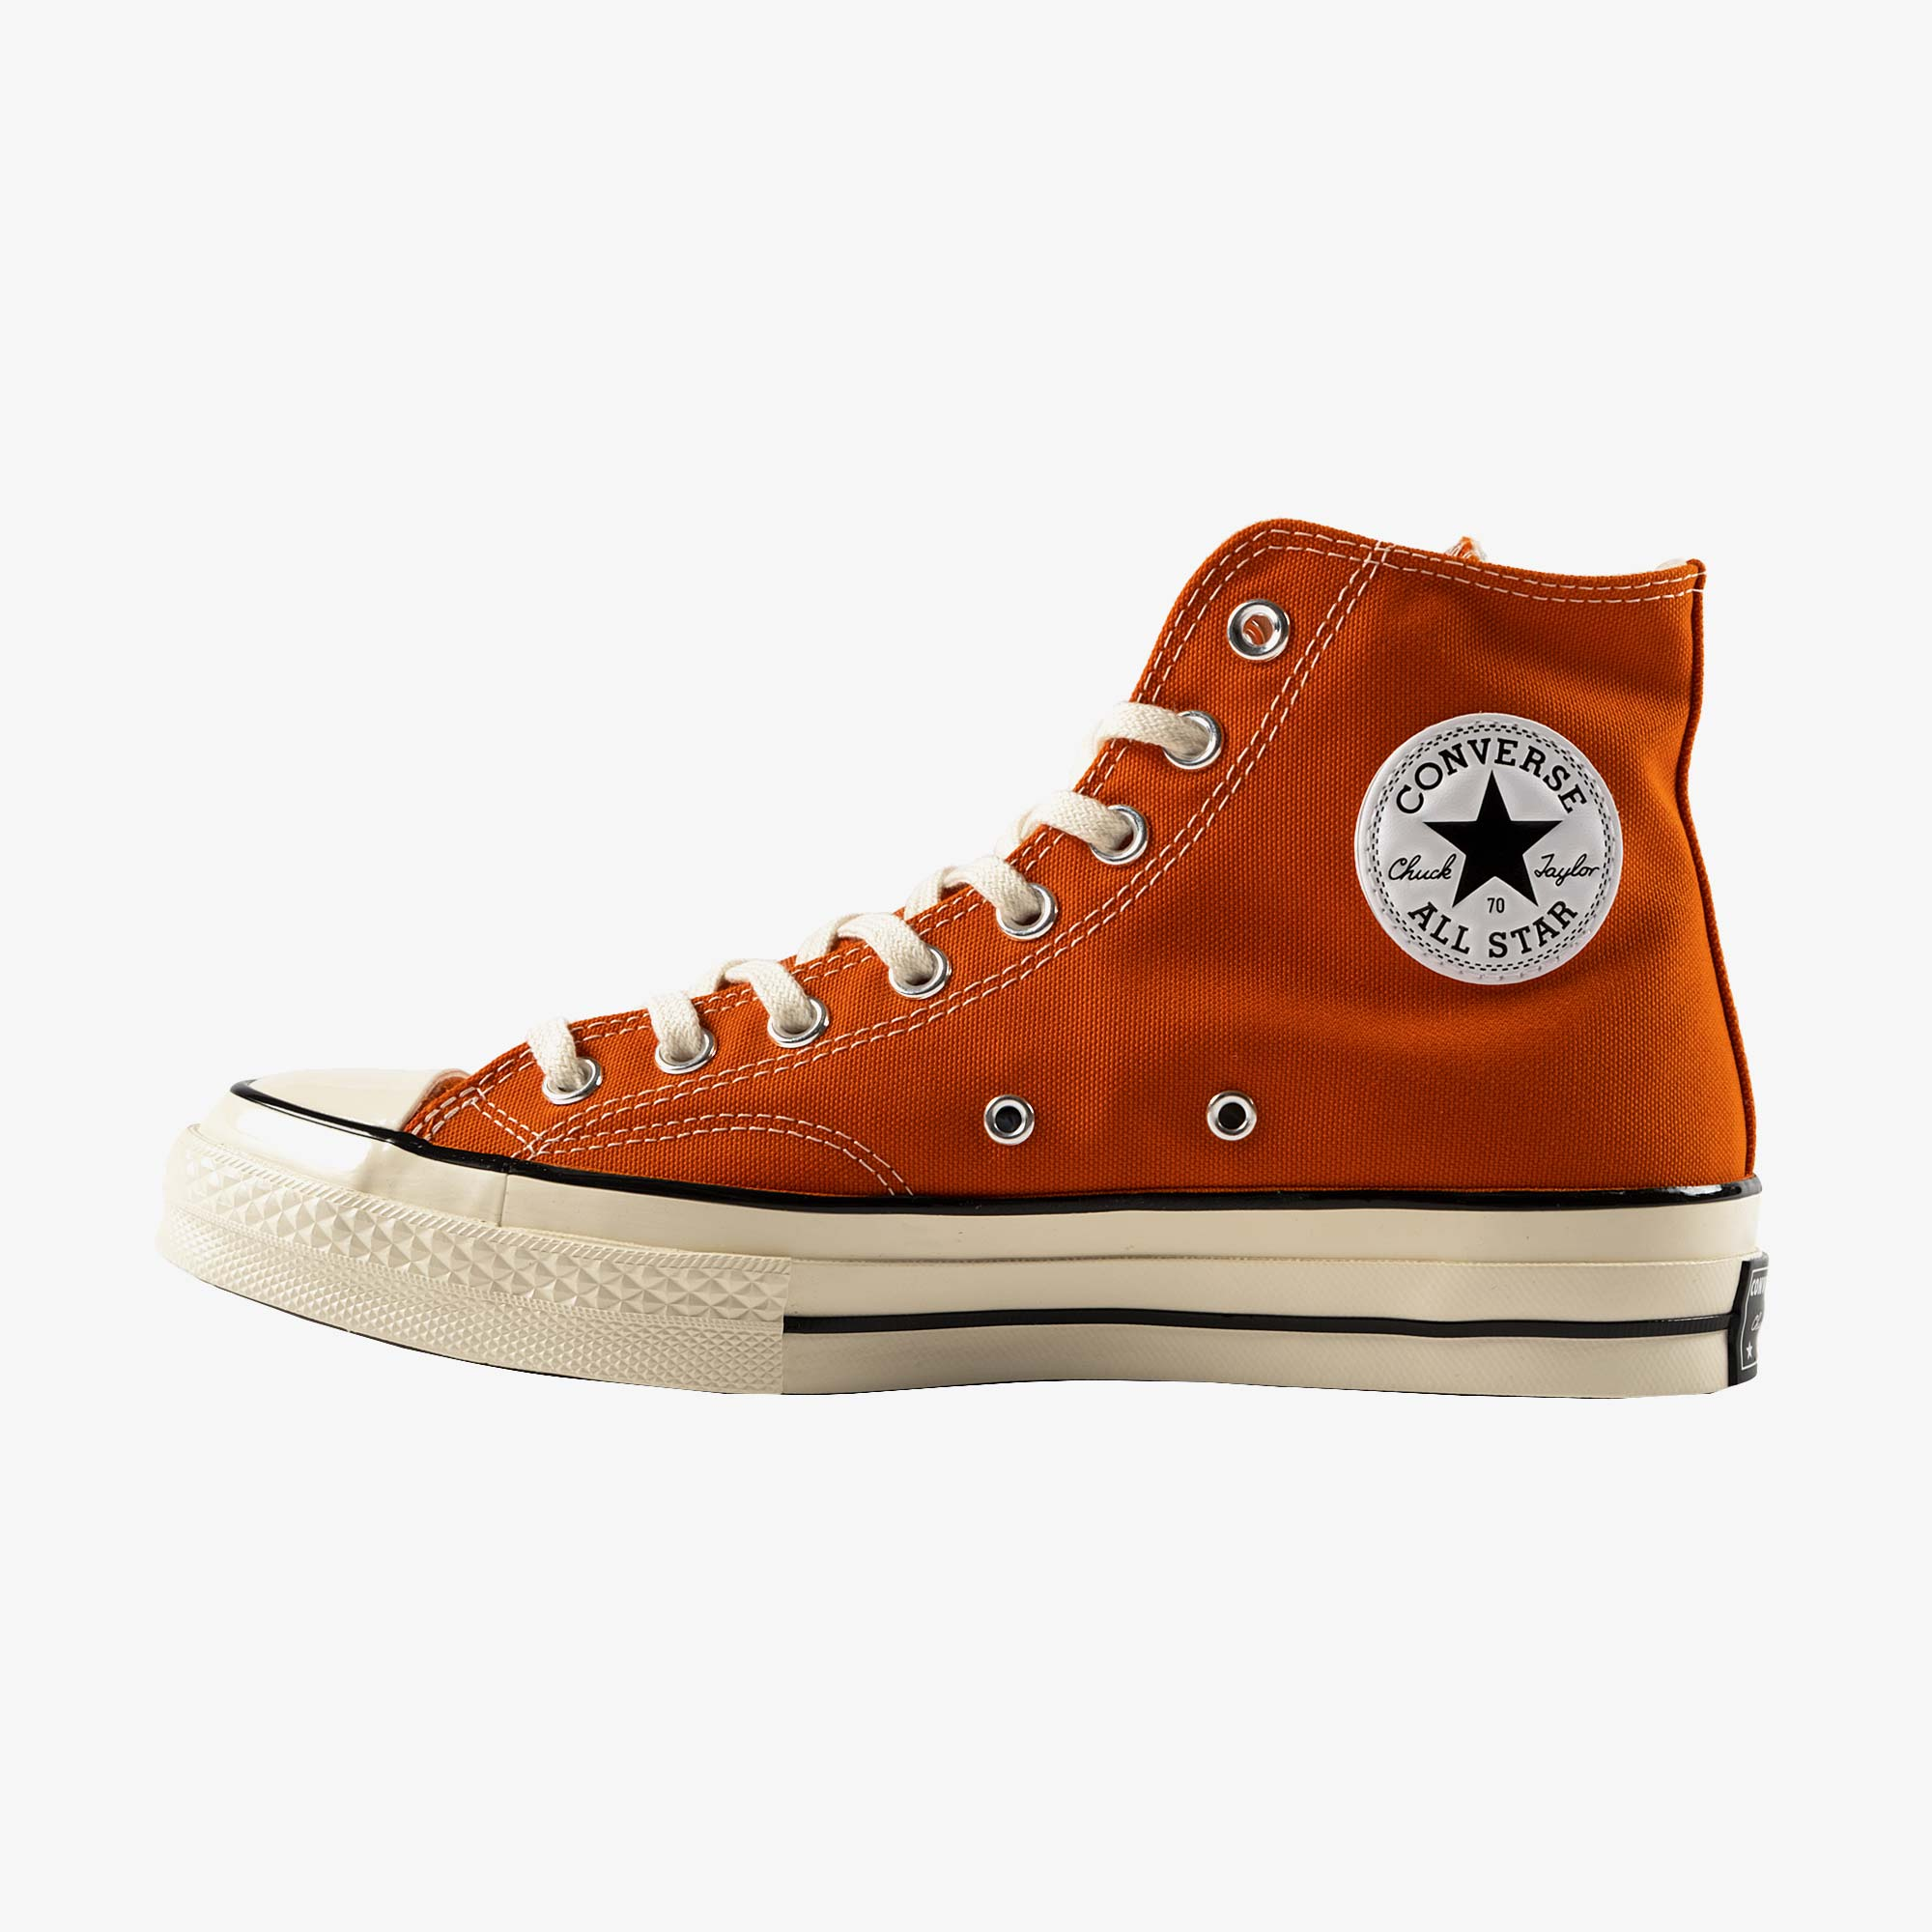 Converse Chuck Taylor Hi 70 Recycled Canvas - Fire Pit 3